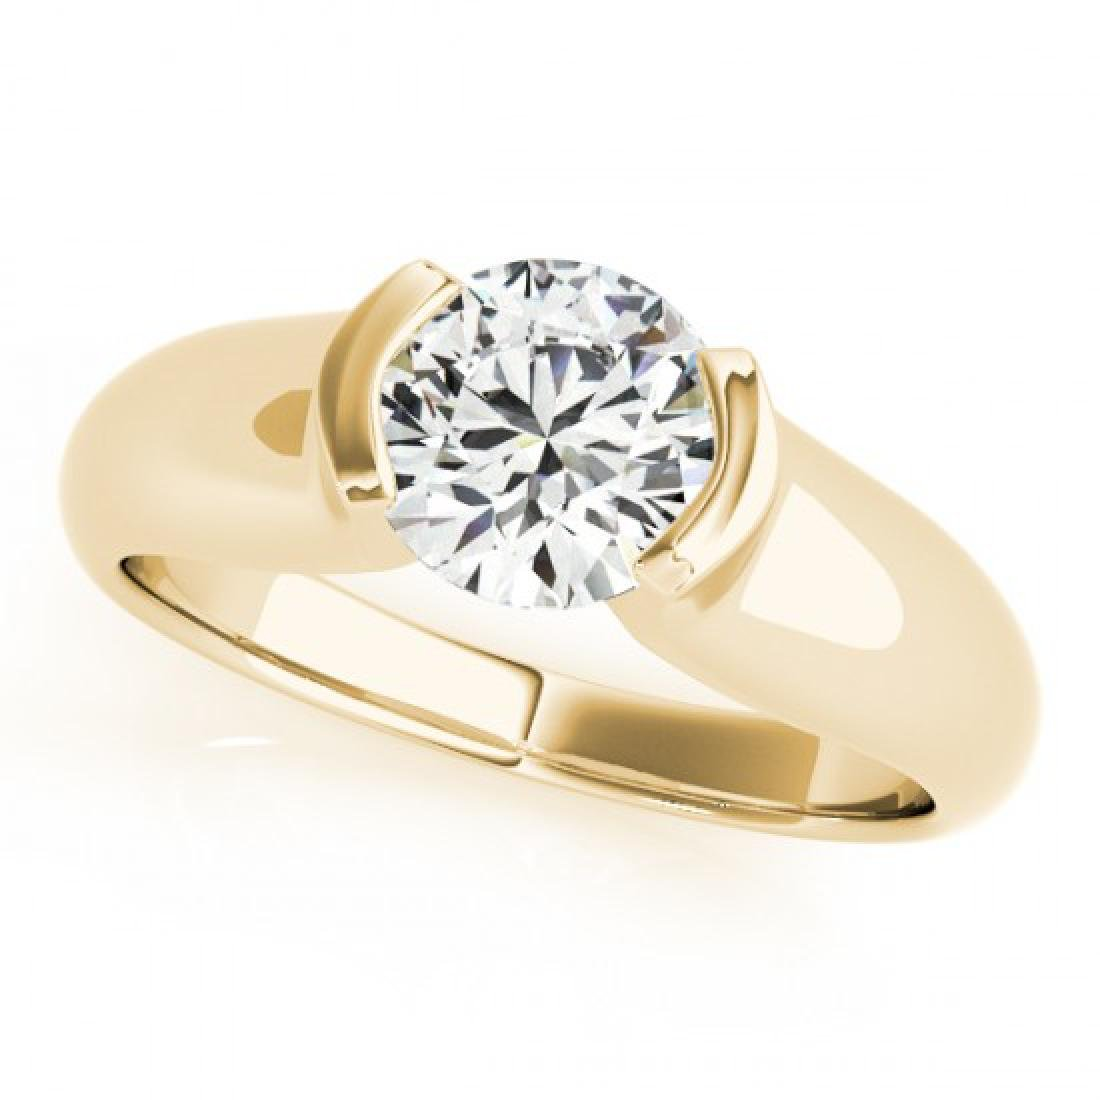 1 CTW Certified VS/SI Diamond Solitaire Ring 14K Yellow - 2